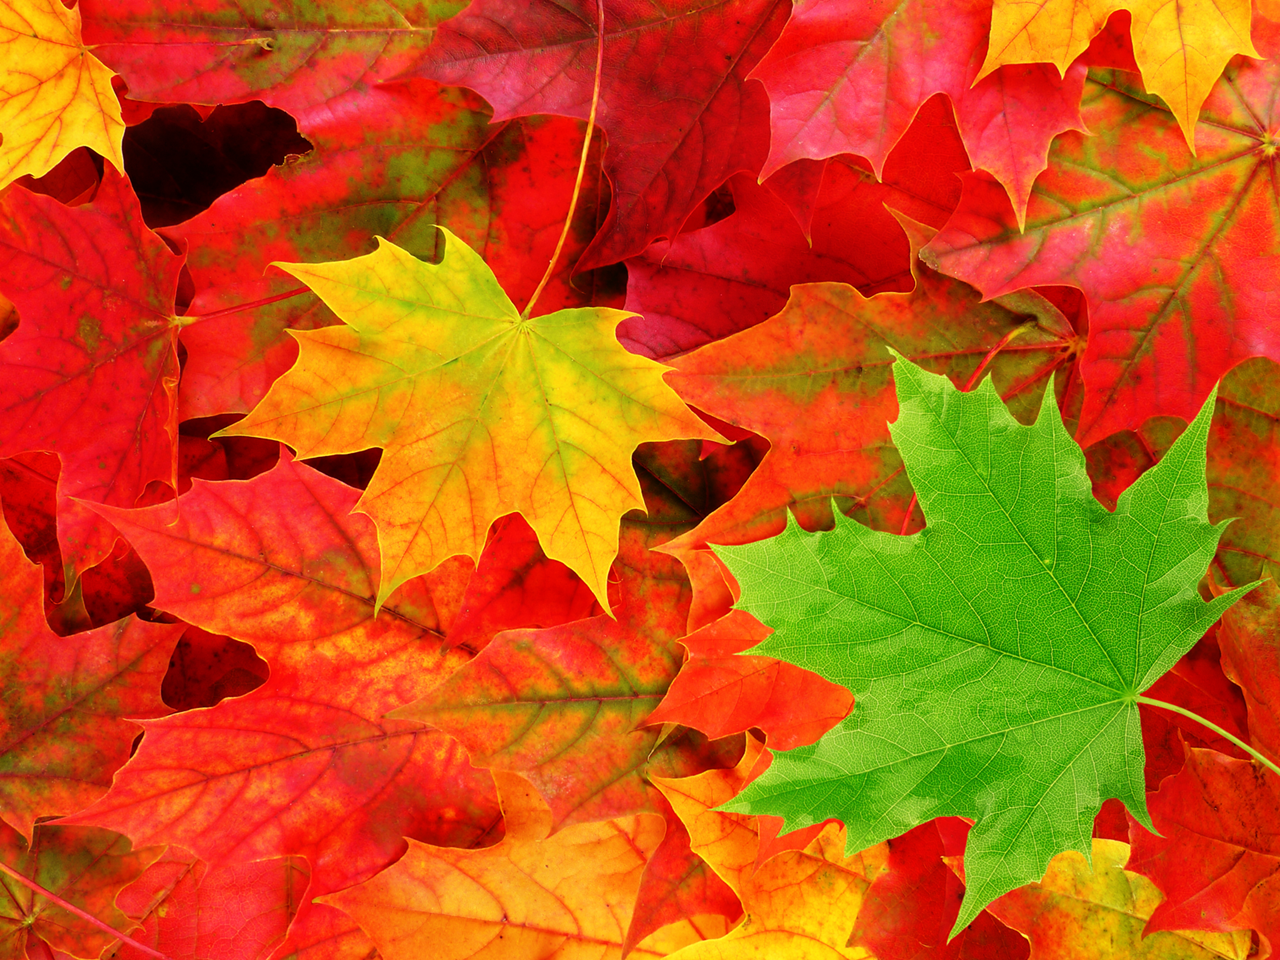 Autumn Leaves Wallpapers Top Free Autumn Leaves